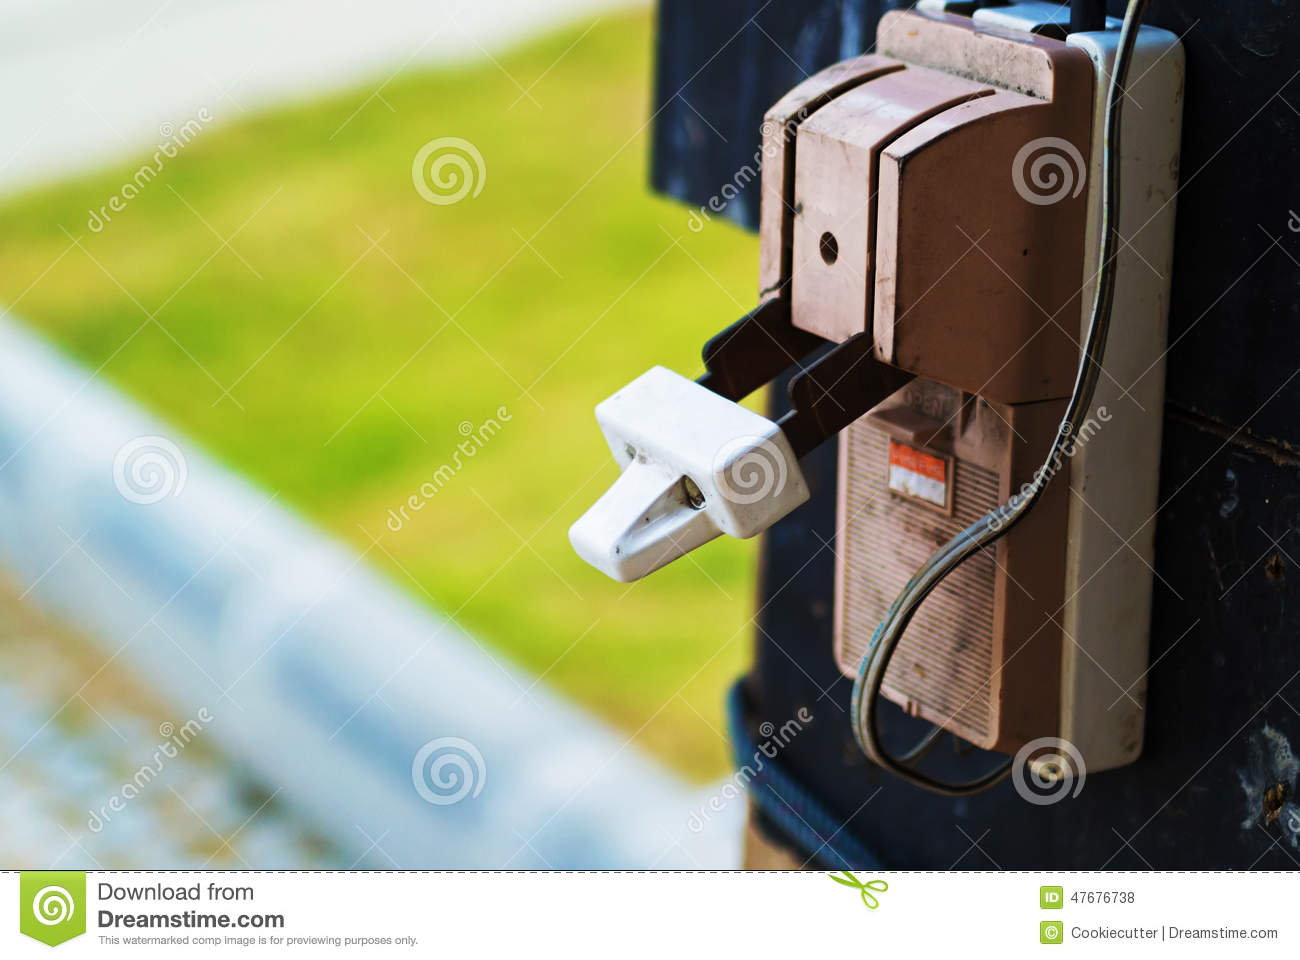 Electricity Circuit Breakers Stock Photo Image Of Cabinet Breaker Fuse Box